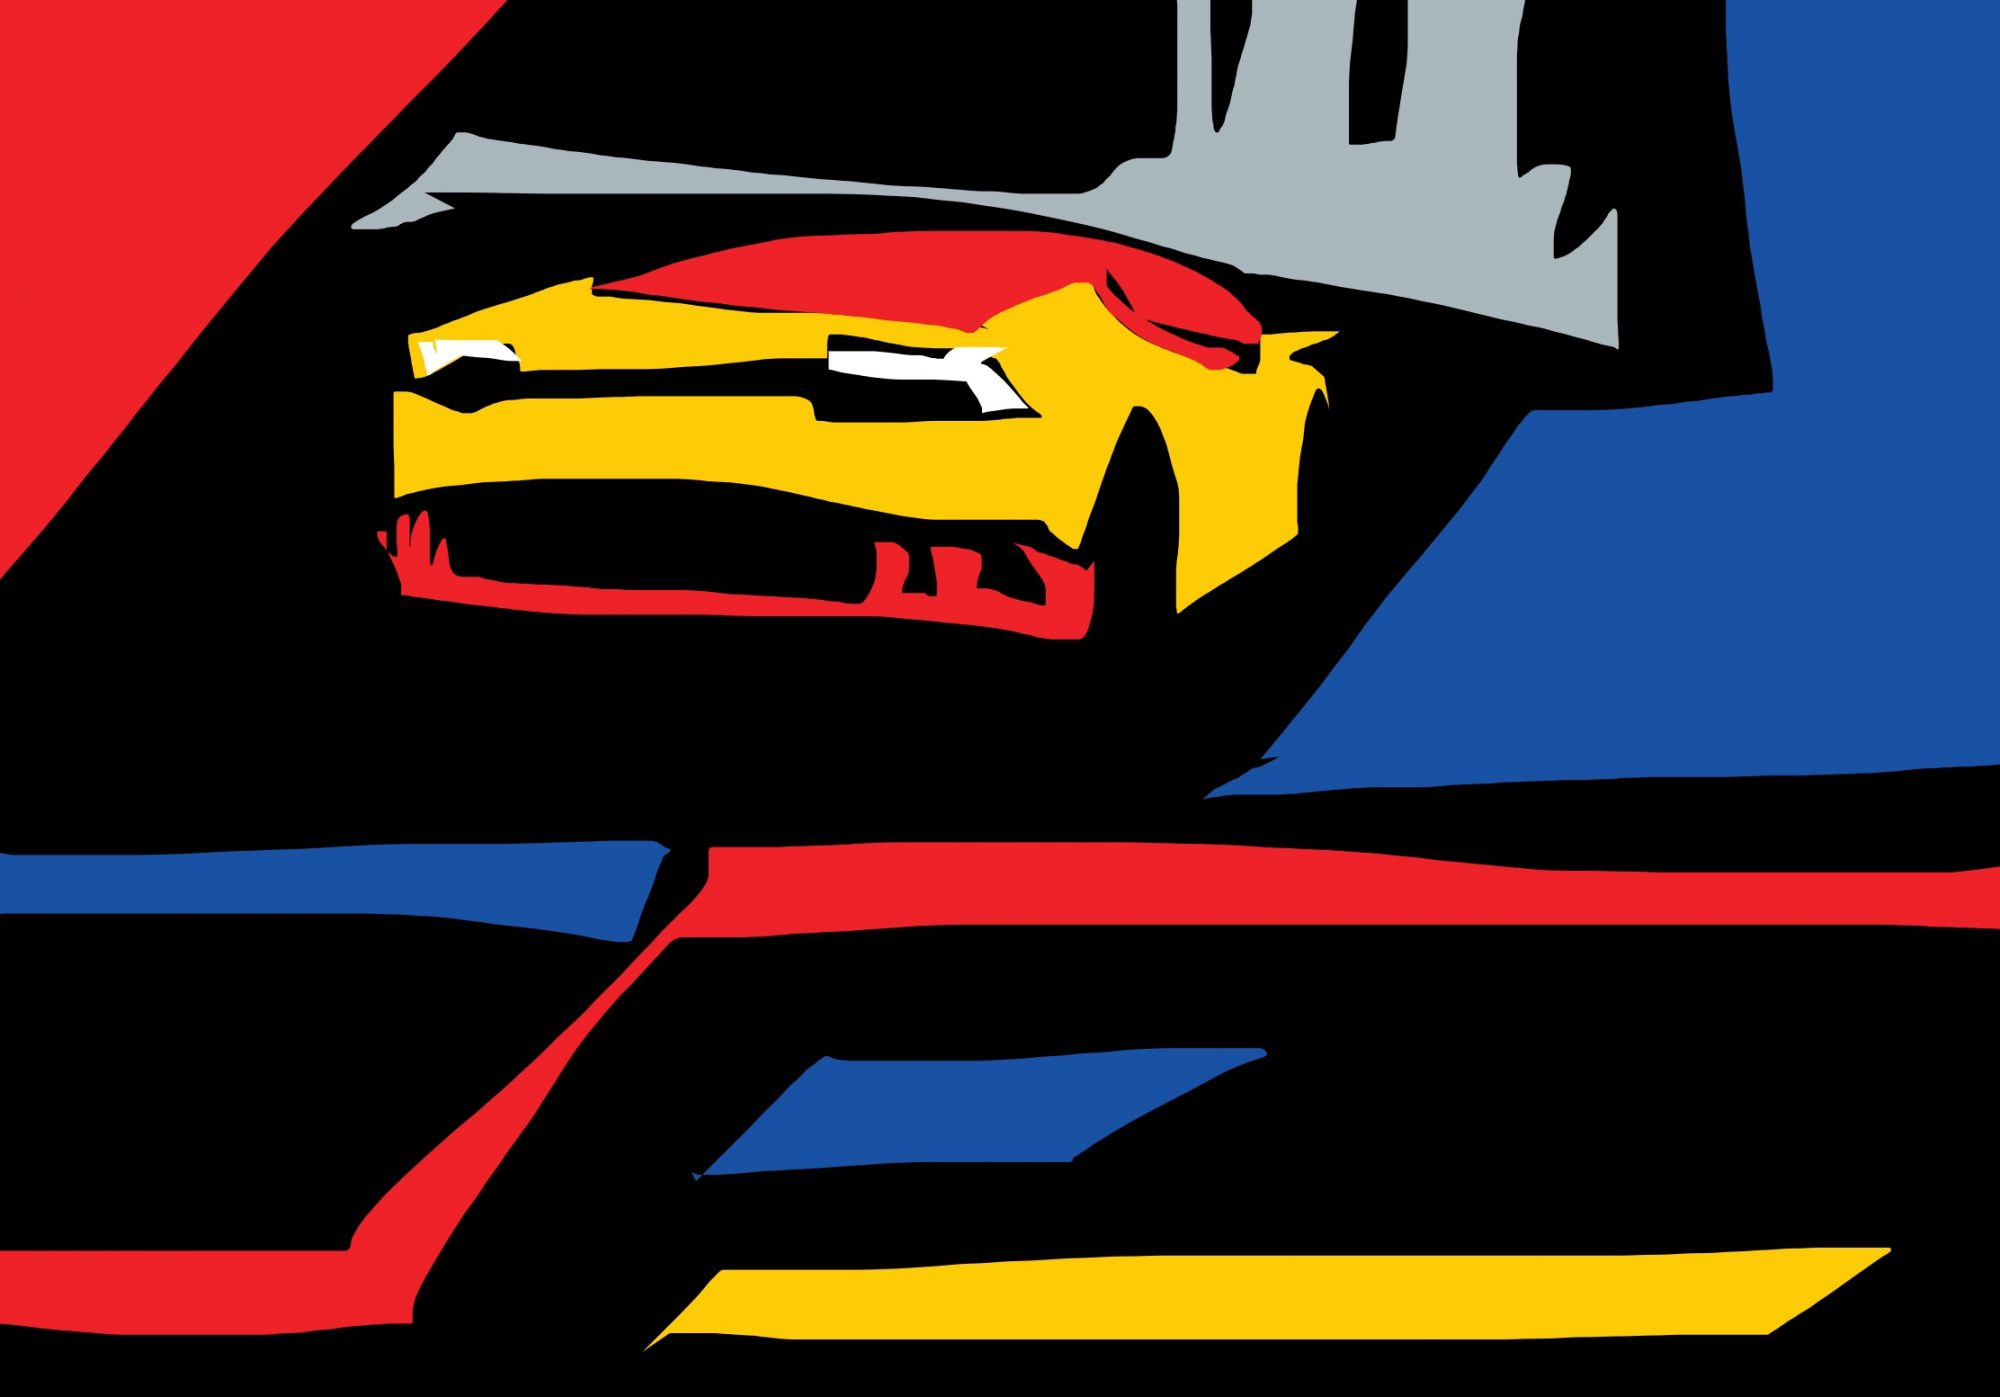 Lamborghini abstract by ERIC KIM